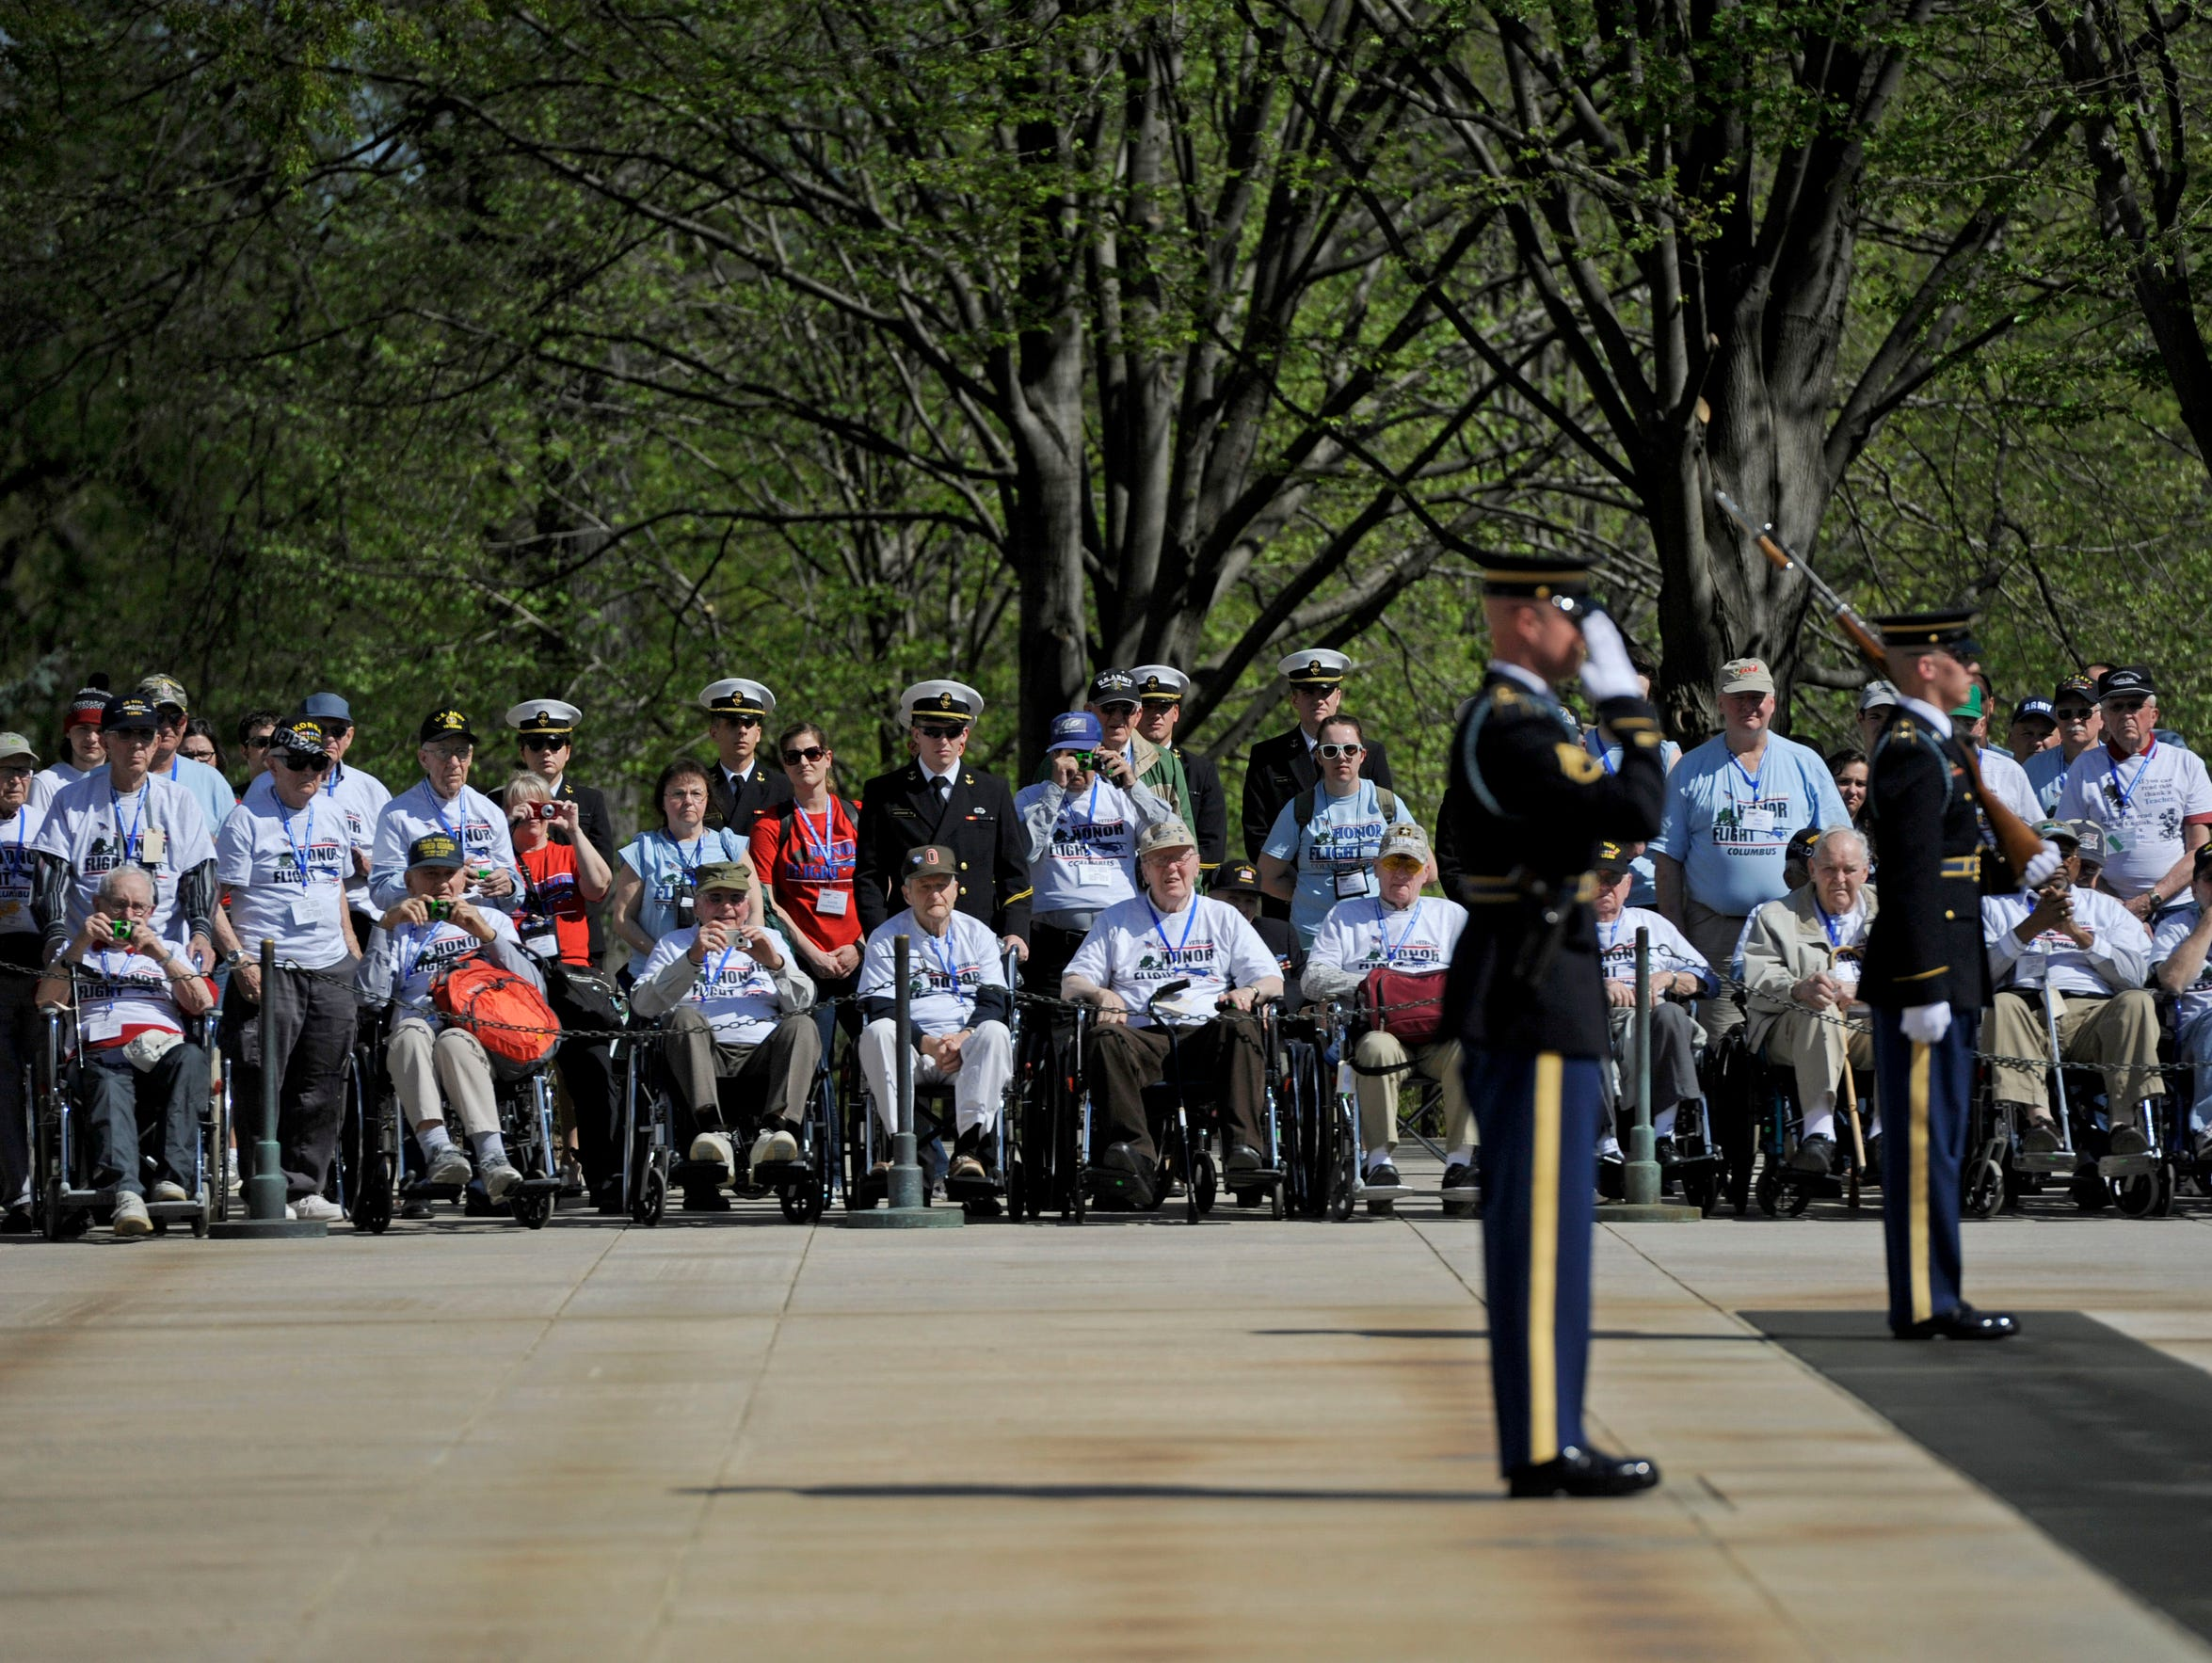 The first stop for the veterans was Arlington National